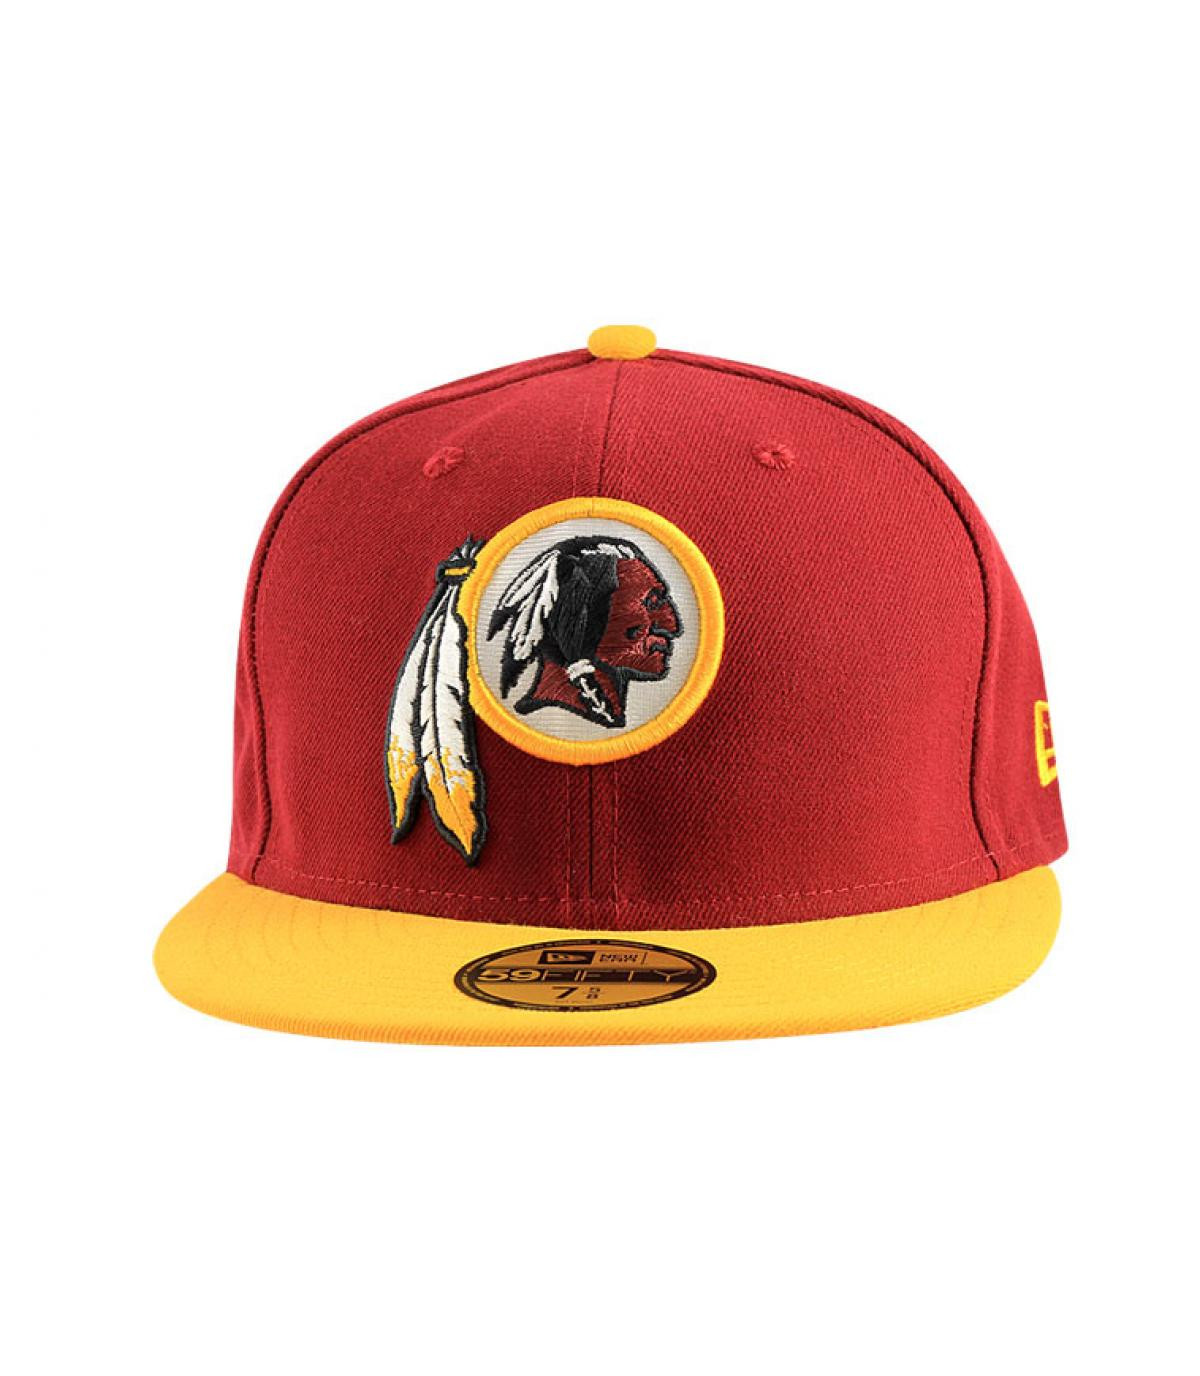 new era cap co product life New era cap co is an international lifestyle brand with an authentic sports  heritage that dates back over 90 years.